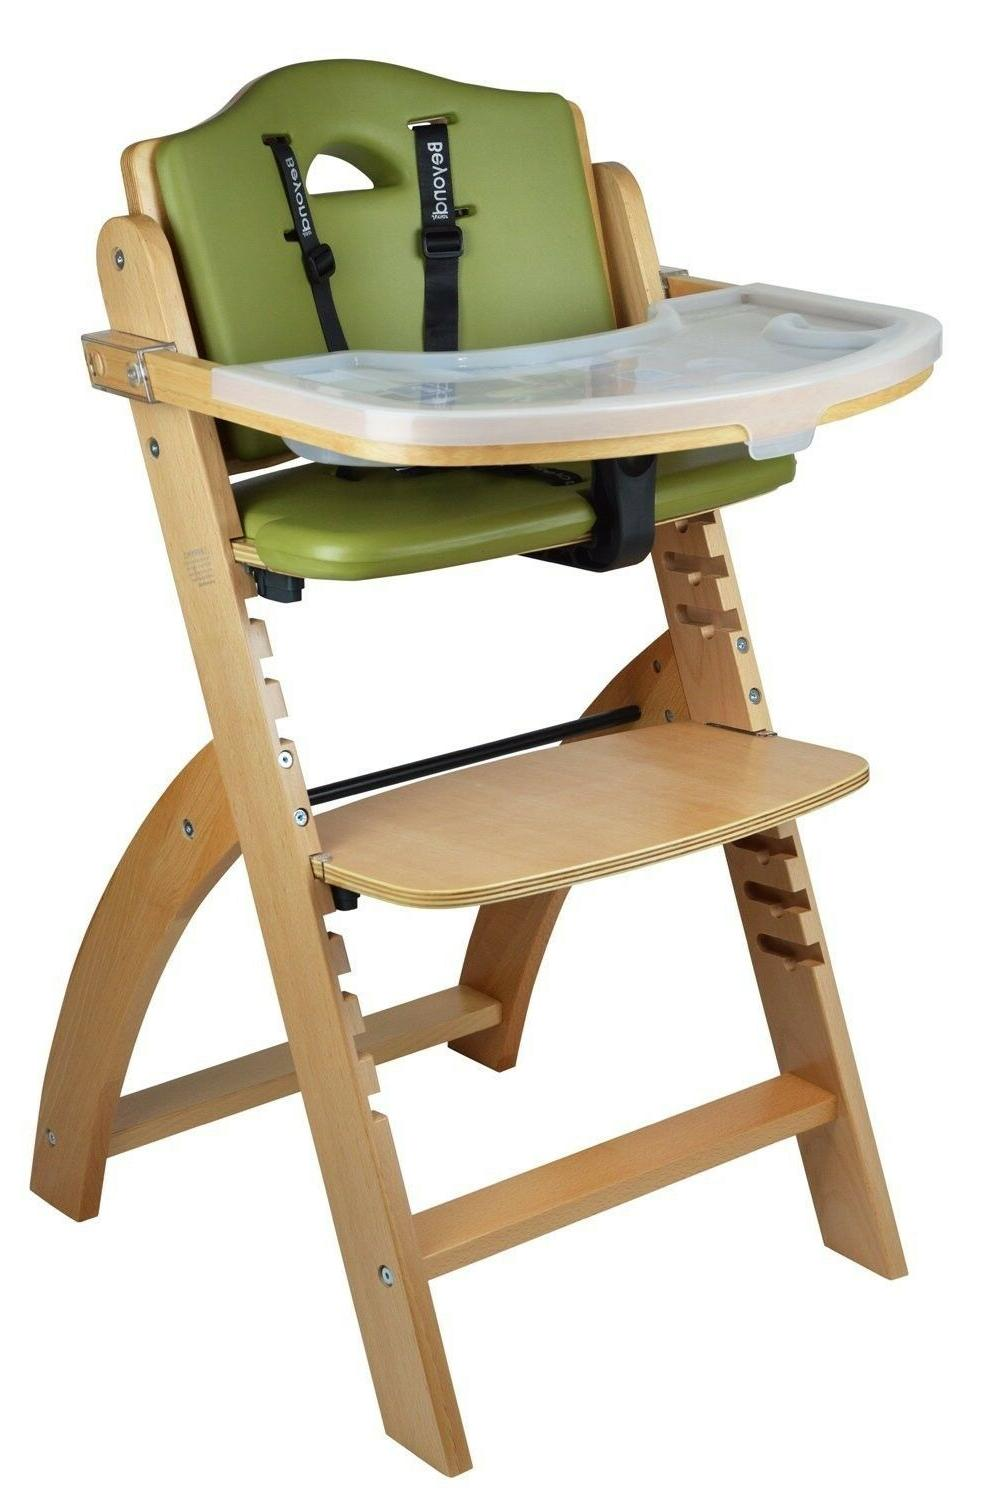 Abiie Beyond Wooden High Chair With Tray The